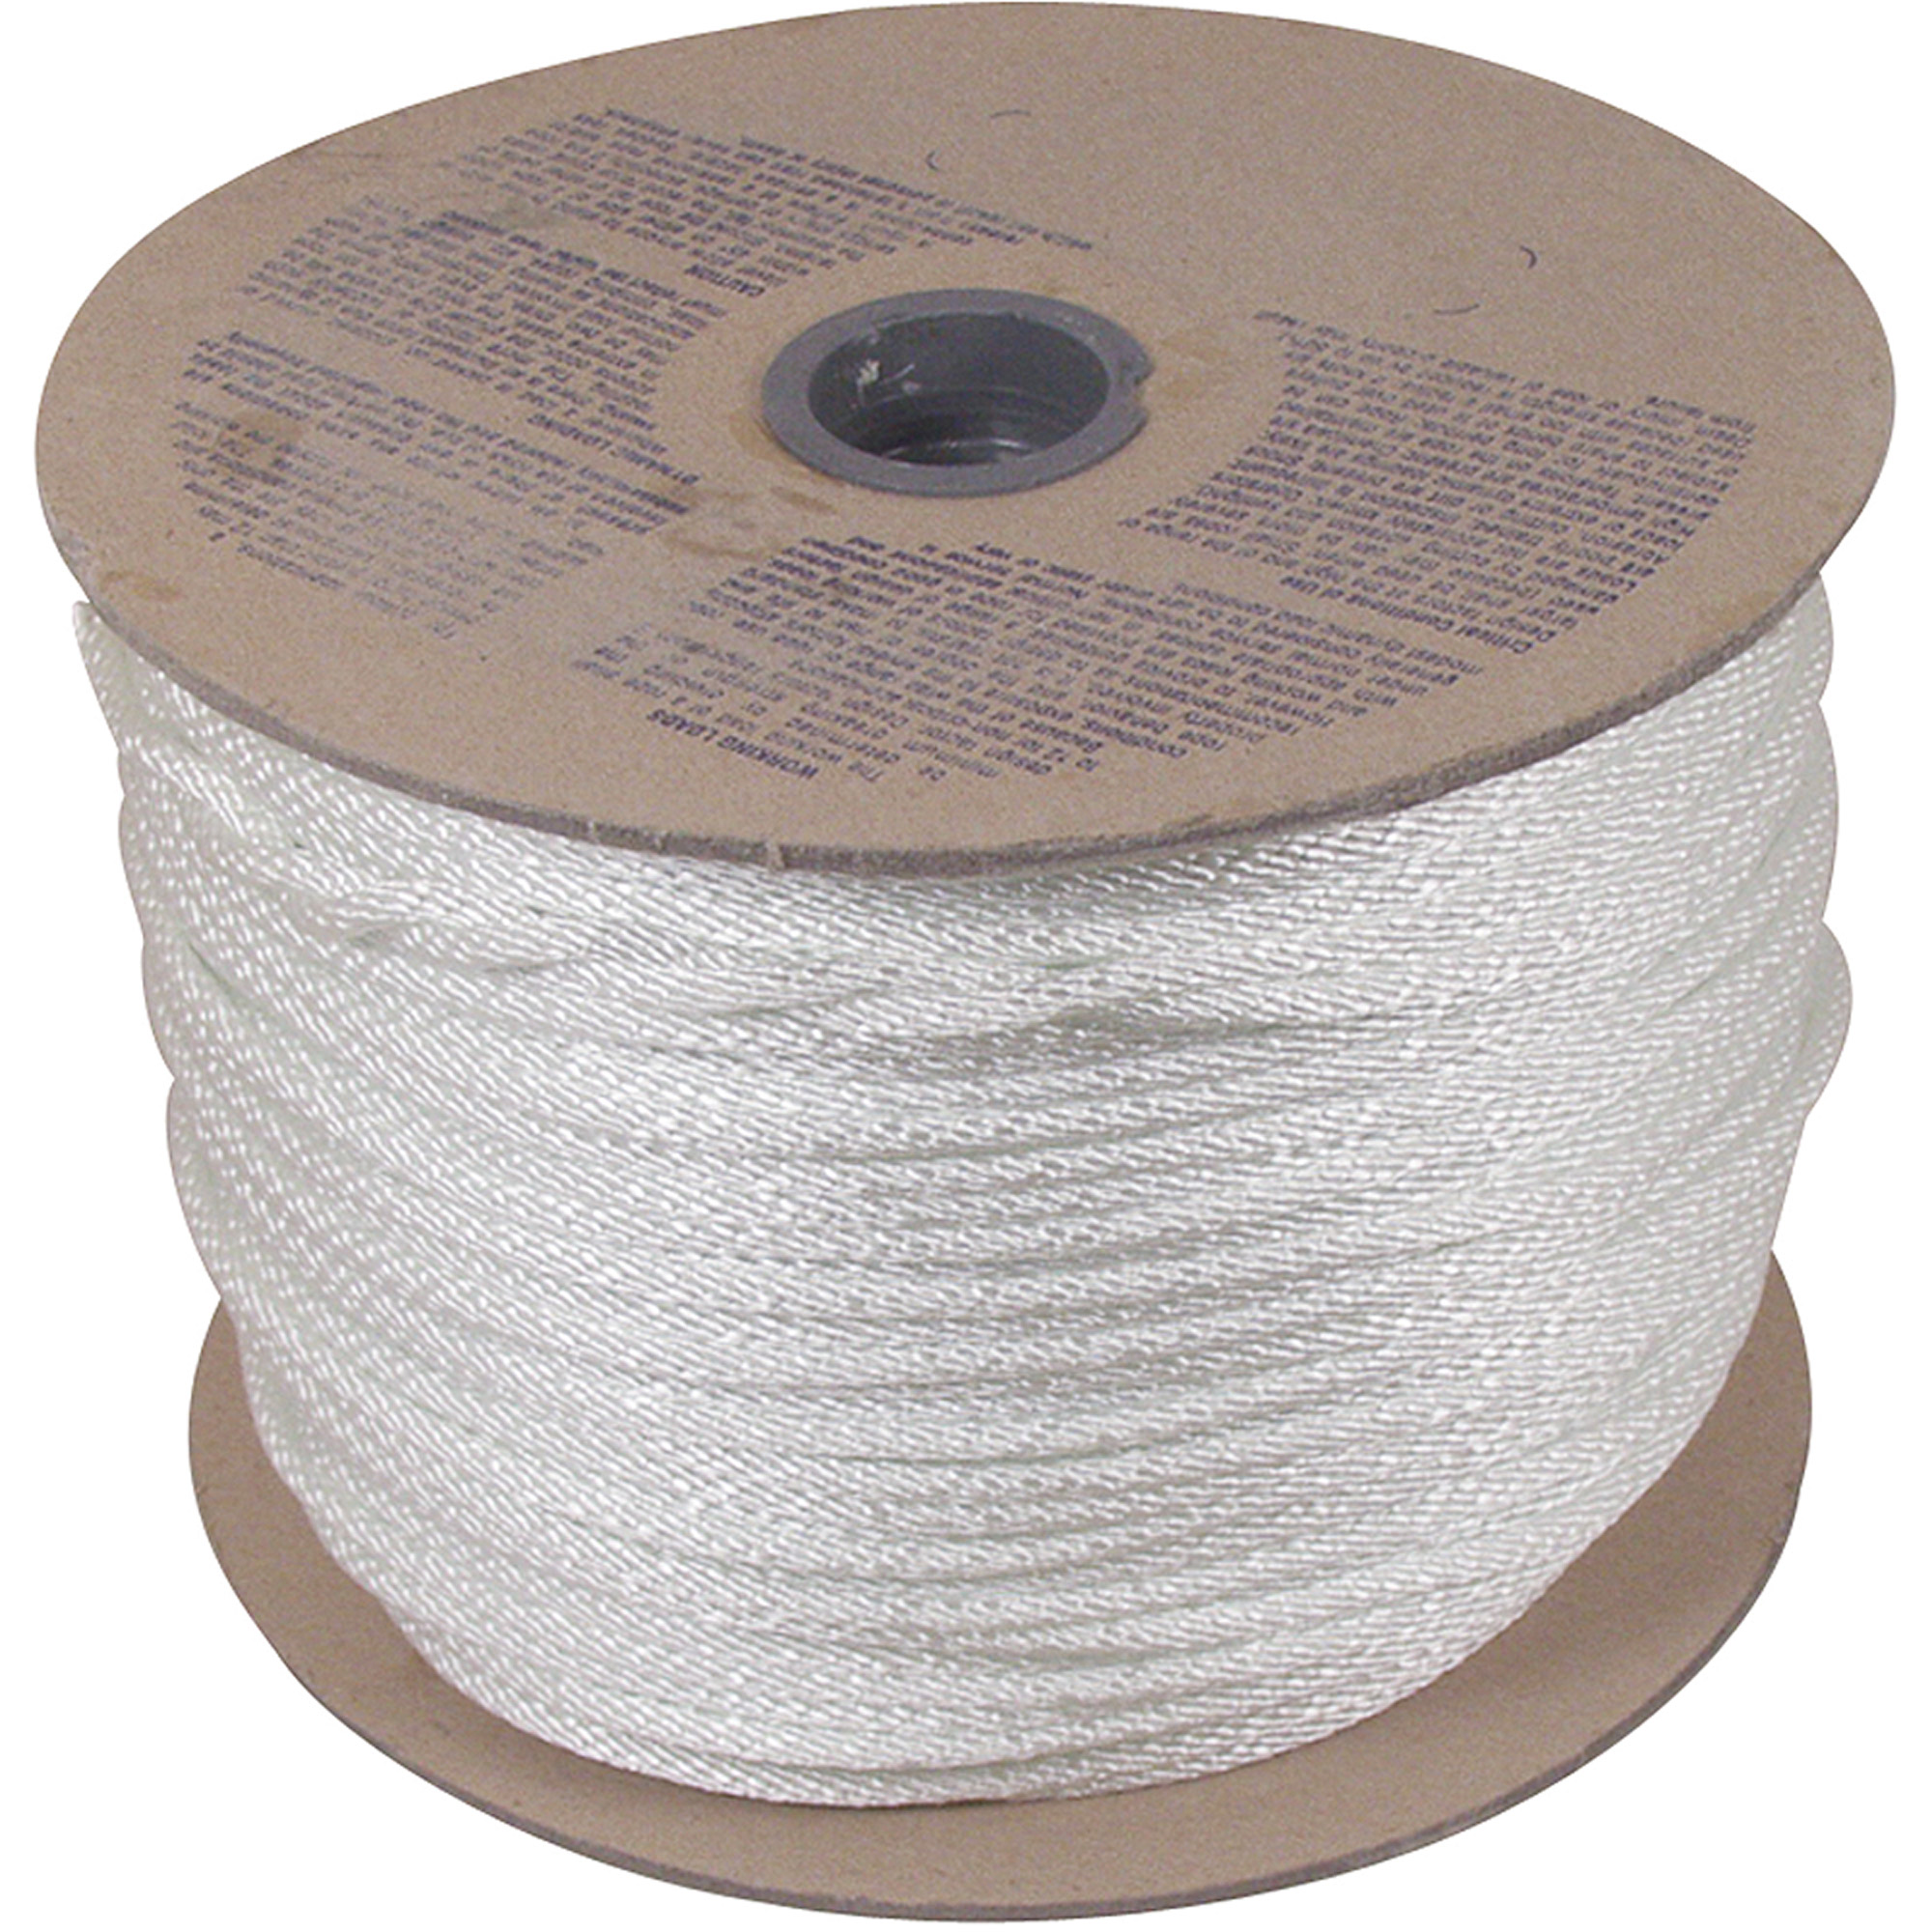 "Unicord 5/16"" x 500' Solid Braid Nylon Rope, White"